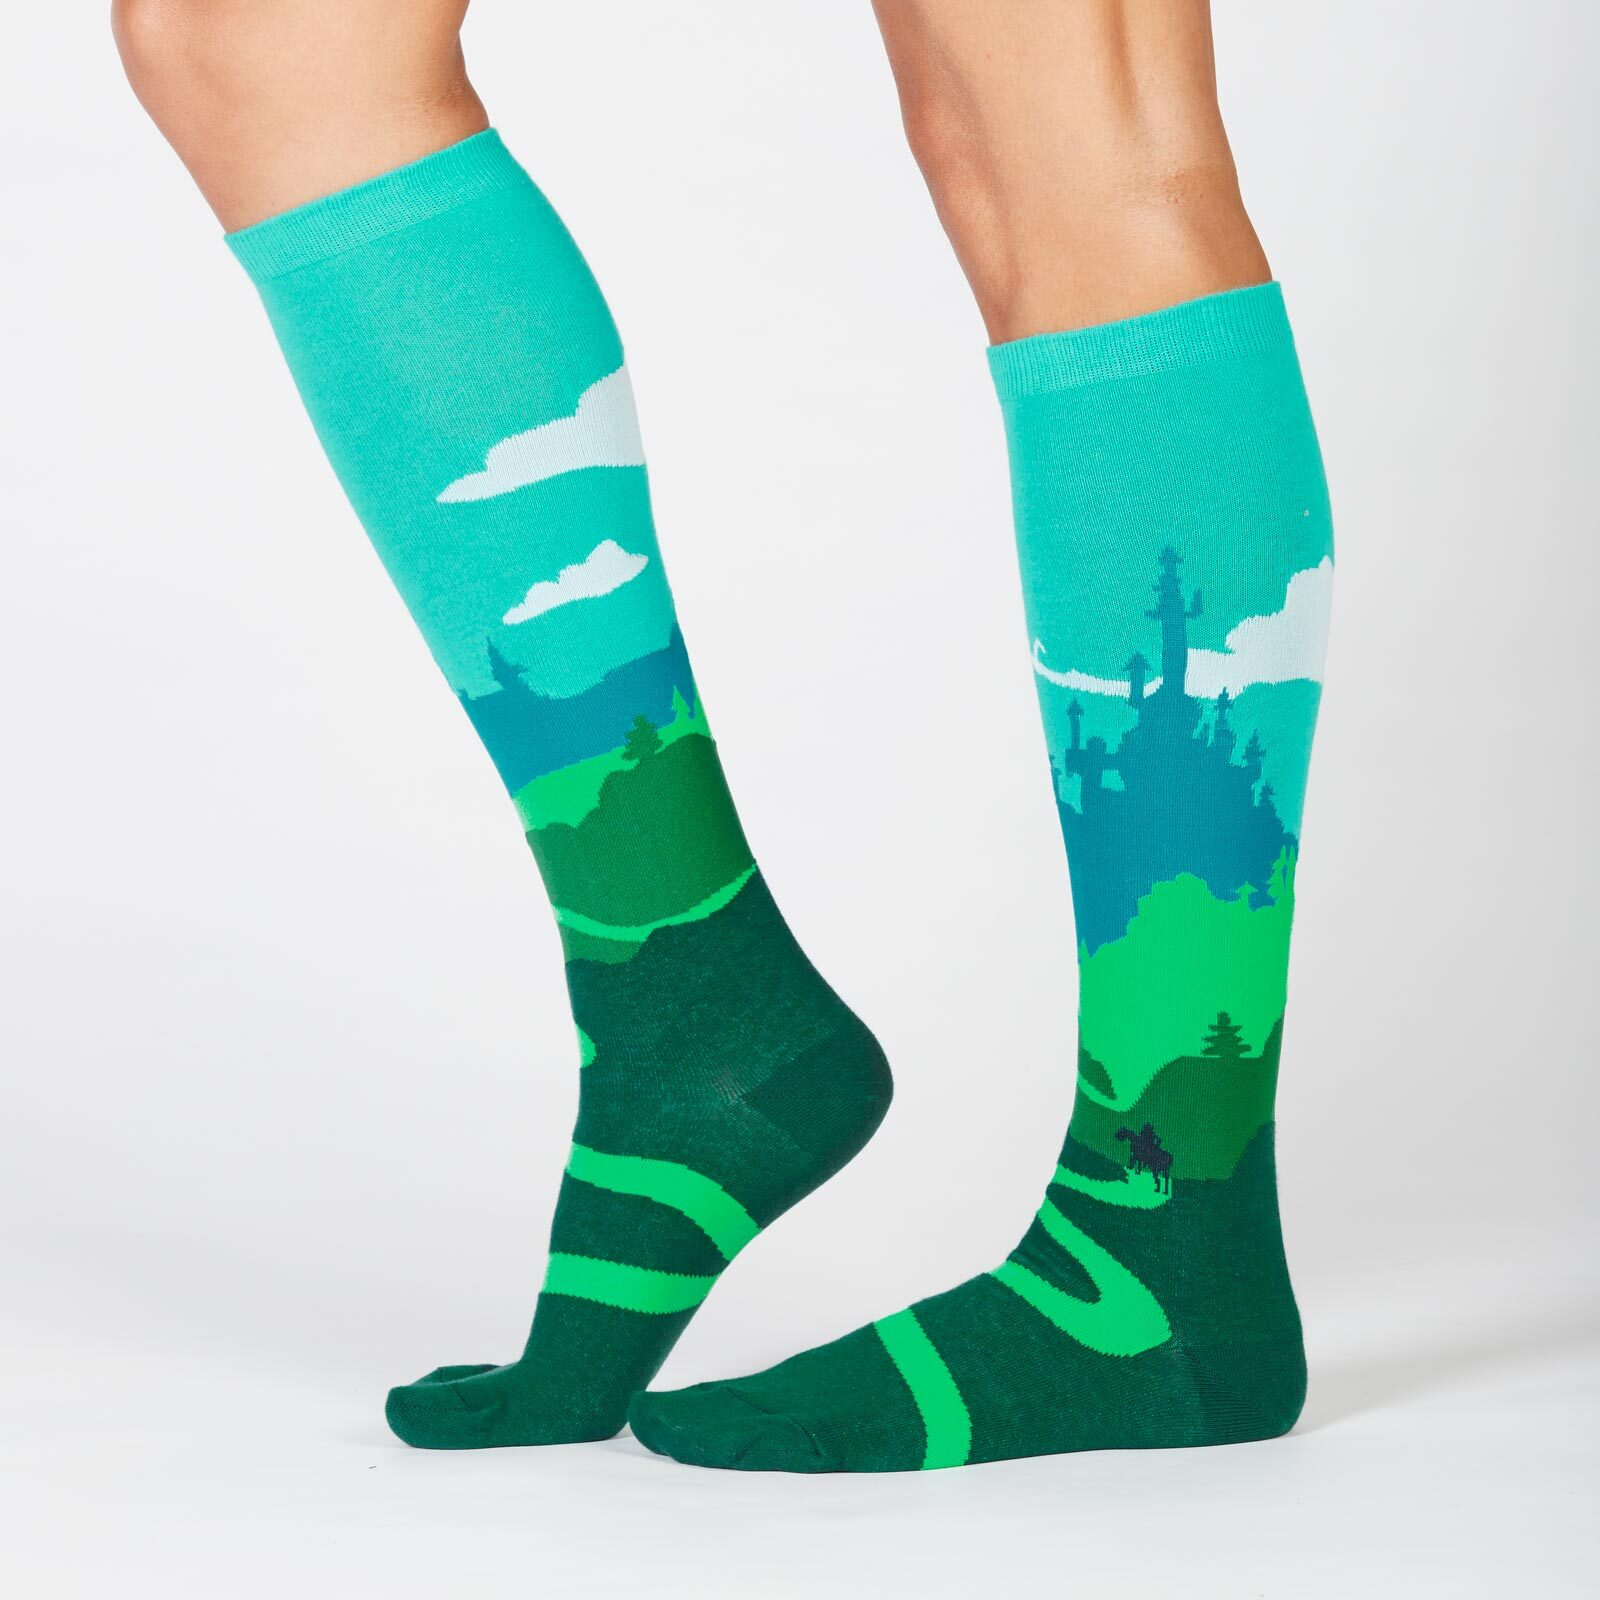 model side view of Yonder Castle - Fairy tale Knee High Socks Blue and Green - Women's